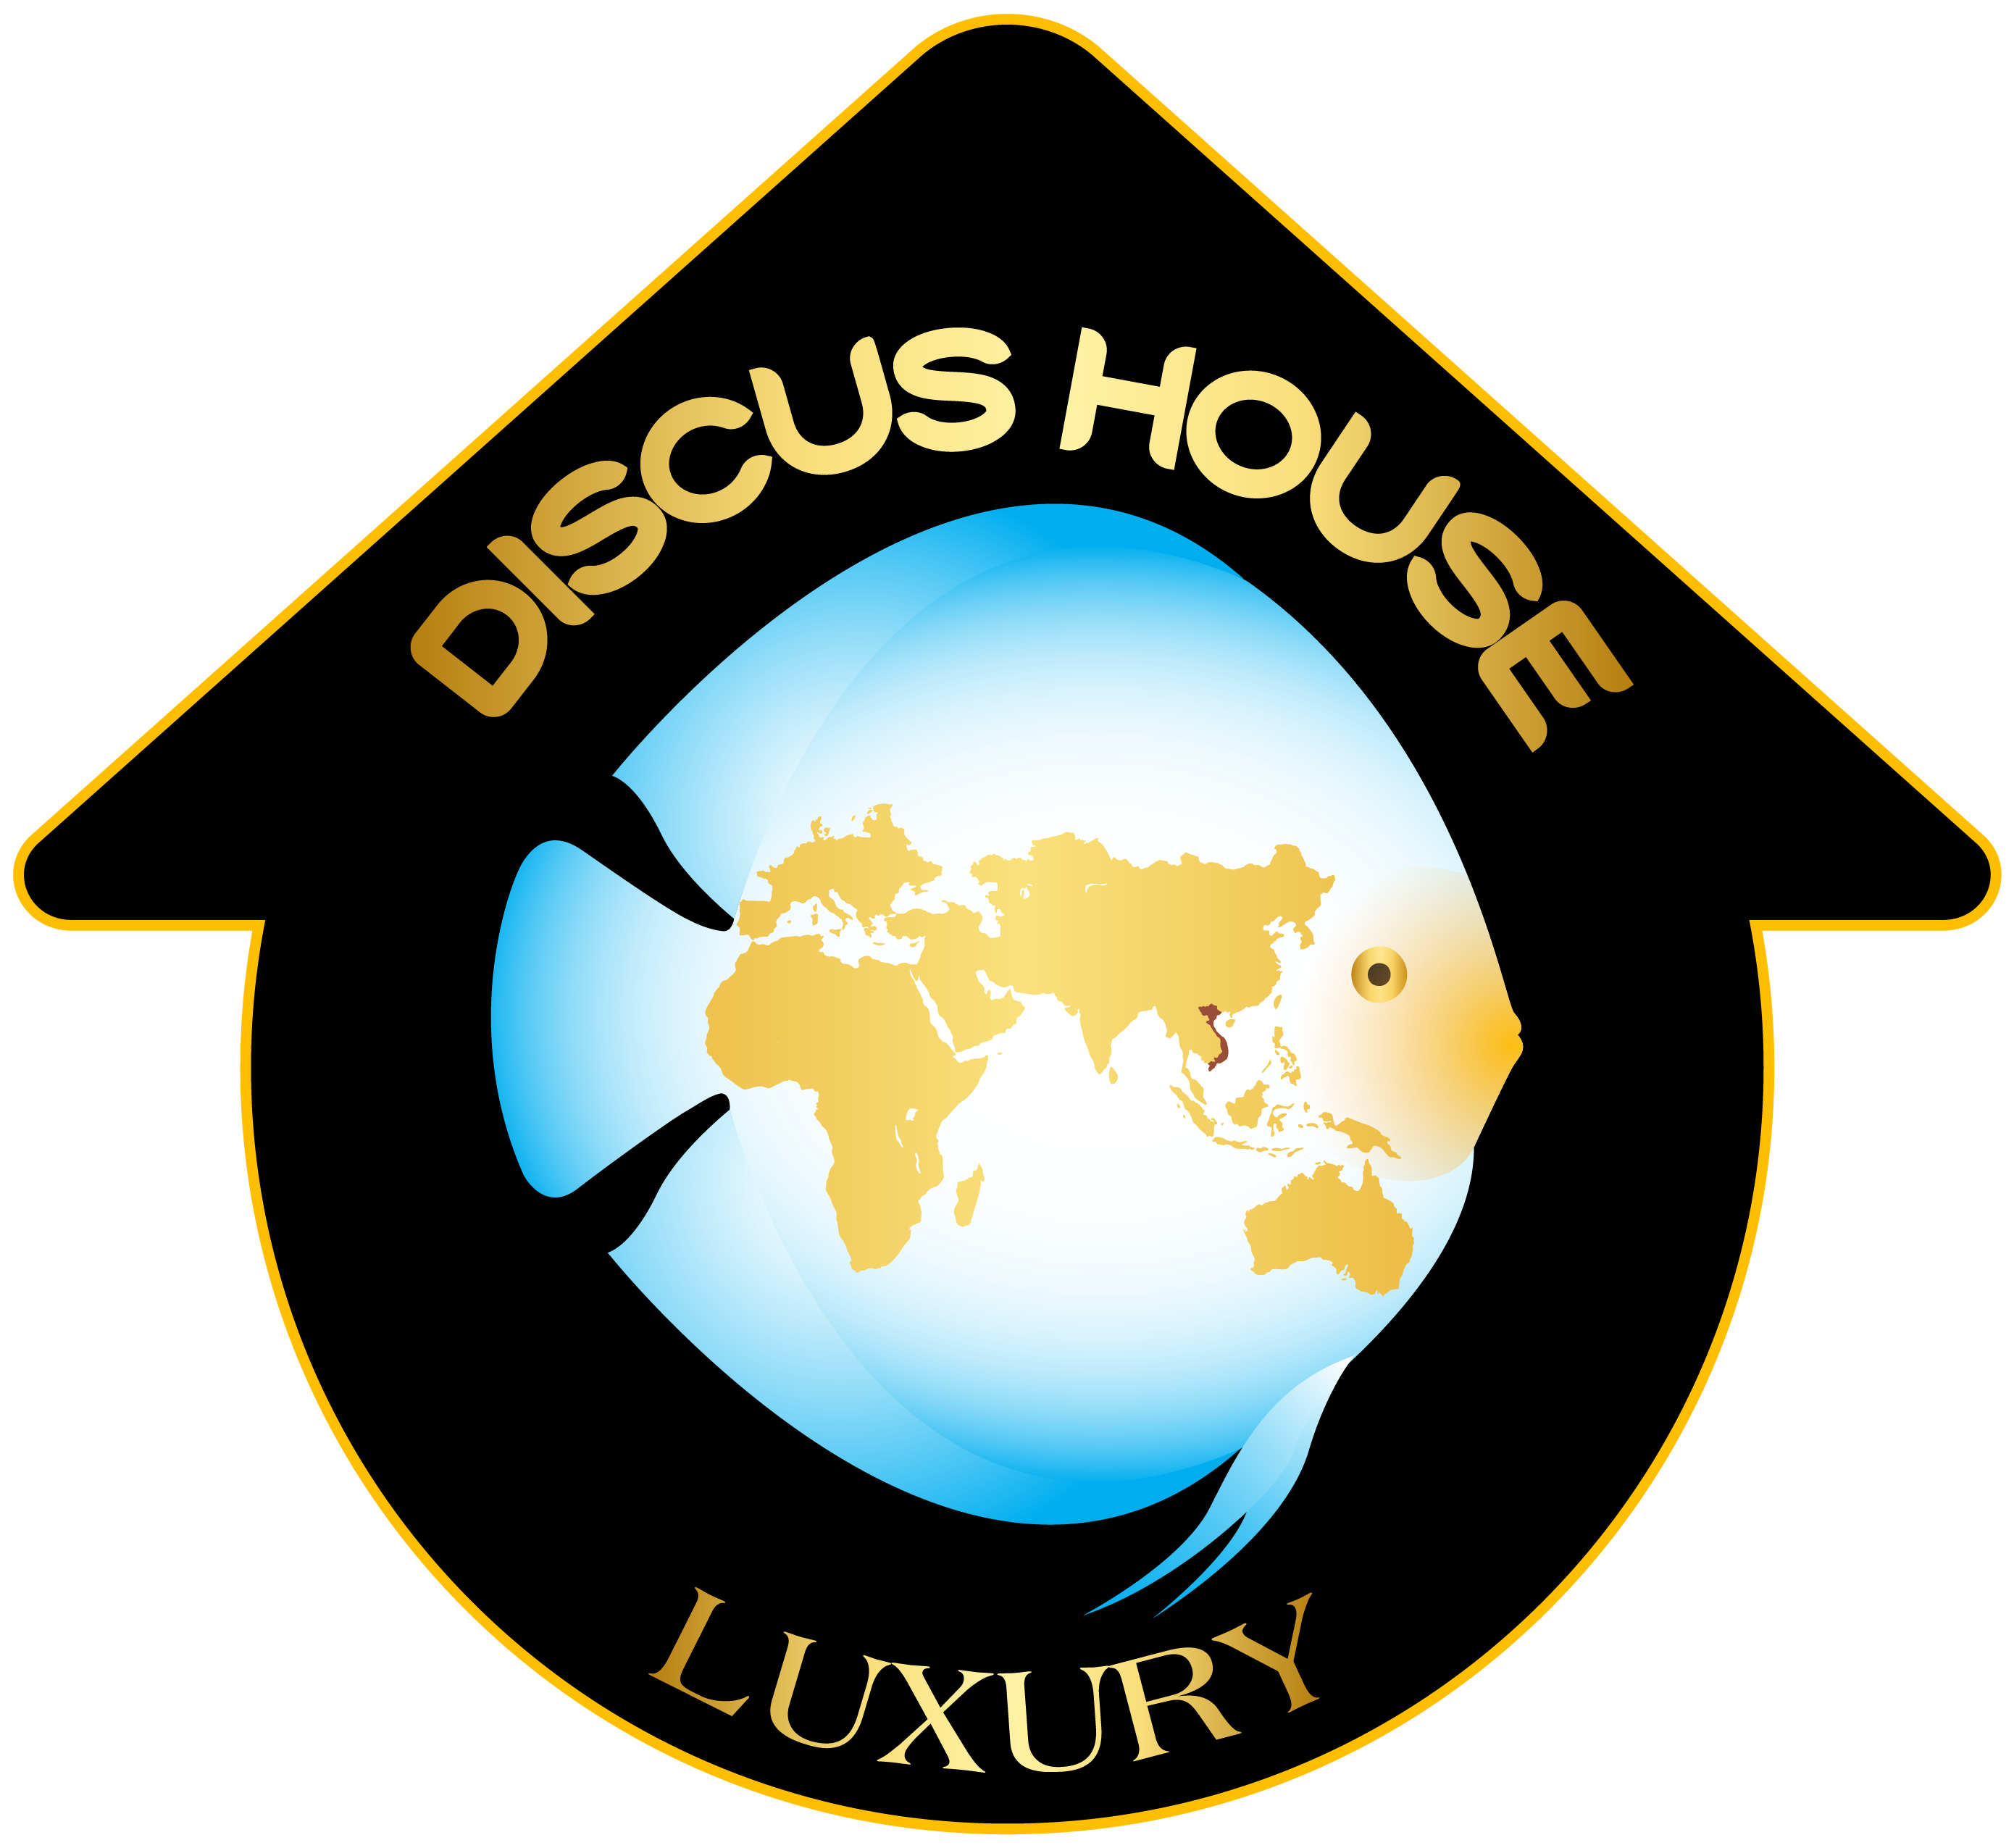 https://discushouse.com/img_data/icon/logo-discus-house661631188896.png